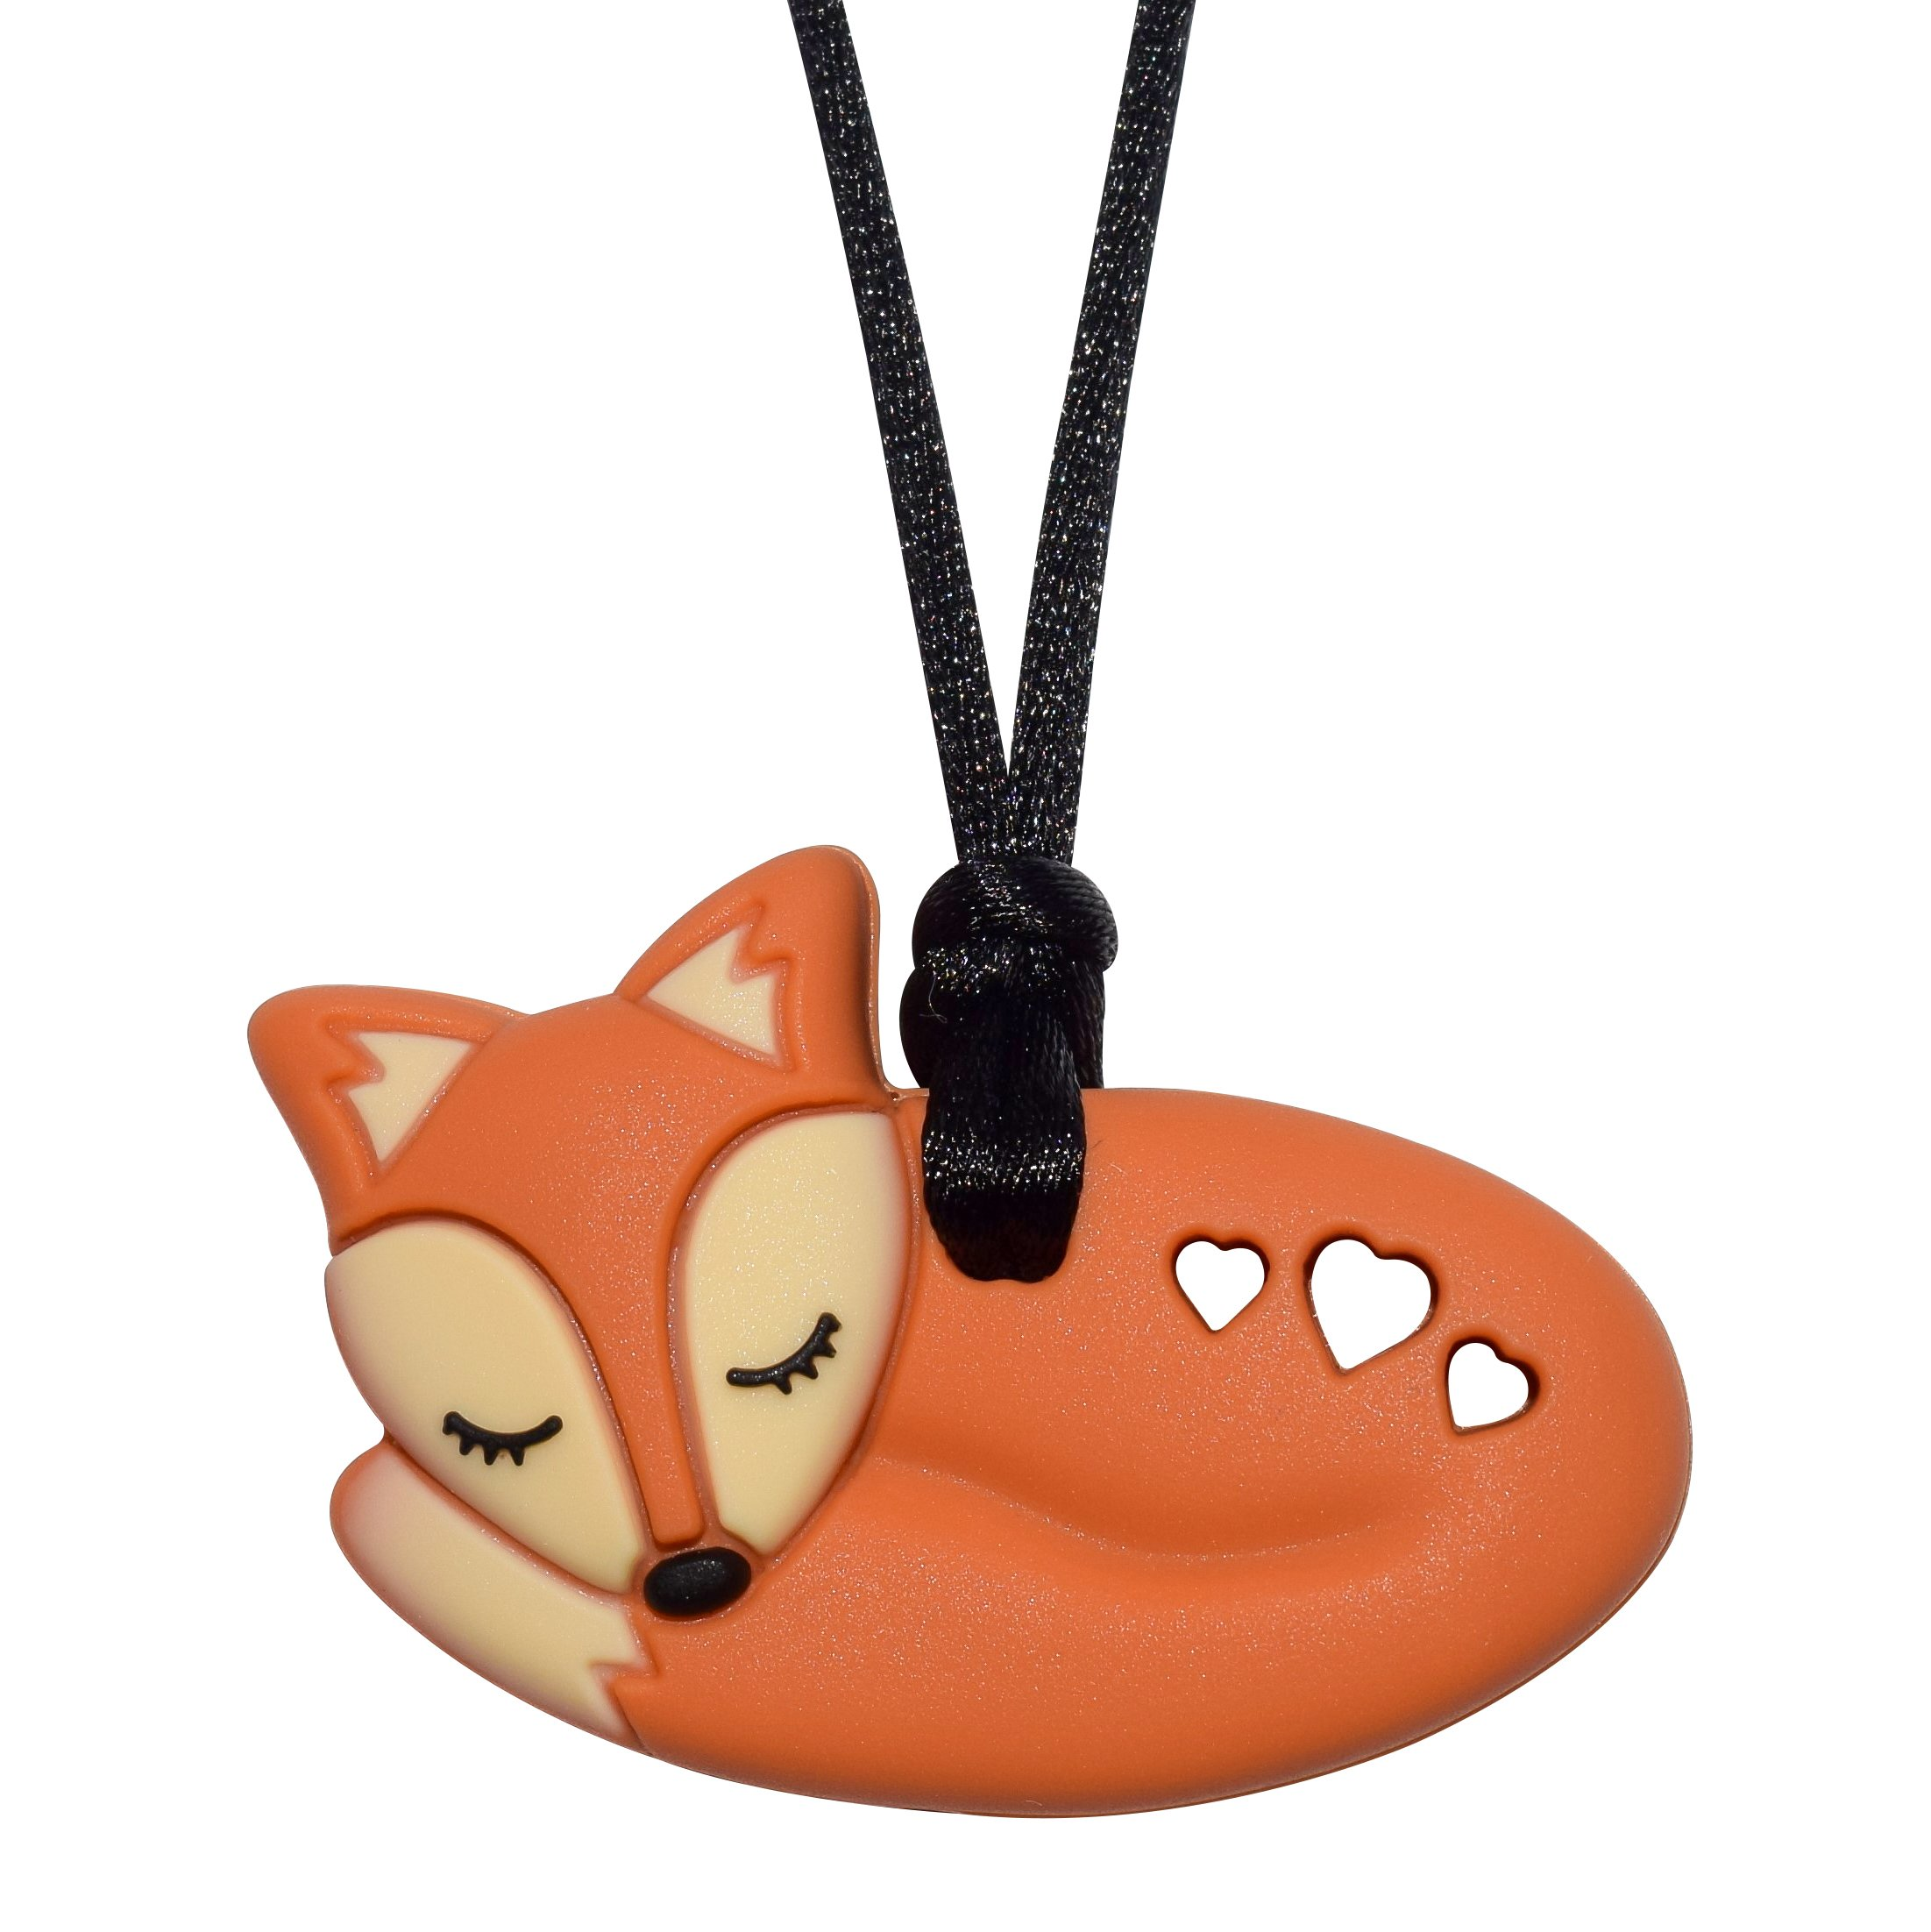 Foxy Fox Necklace (Brown) - Sensory Oral Motor Aide Chewelry Necklace - Chewy Jewelry for Sensory-Focused Kids with Autism Or Special Needs - Calms Kids and Reduces Biting/Chewing/Fidgeting